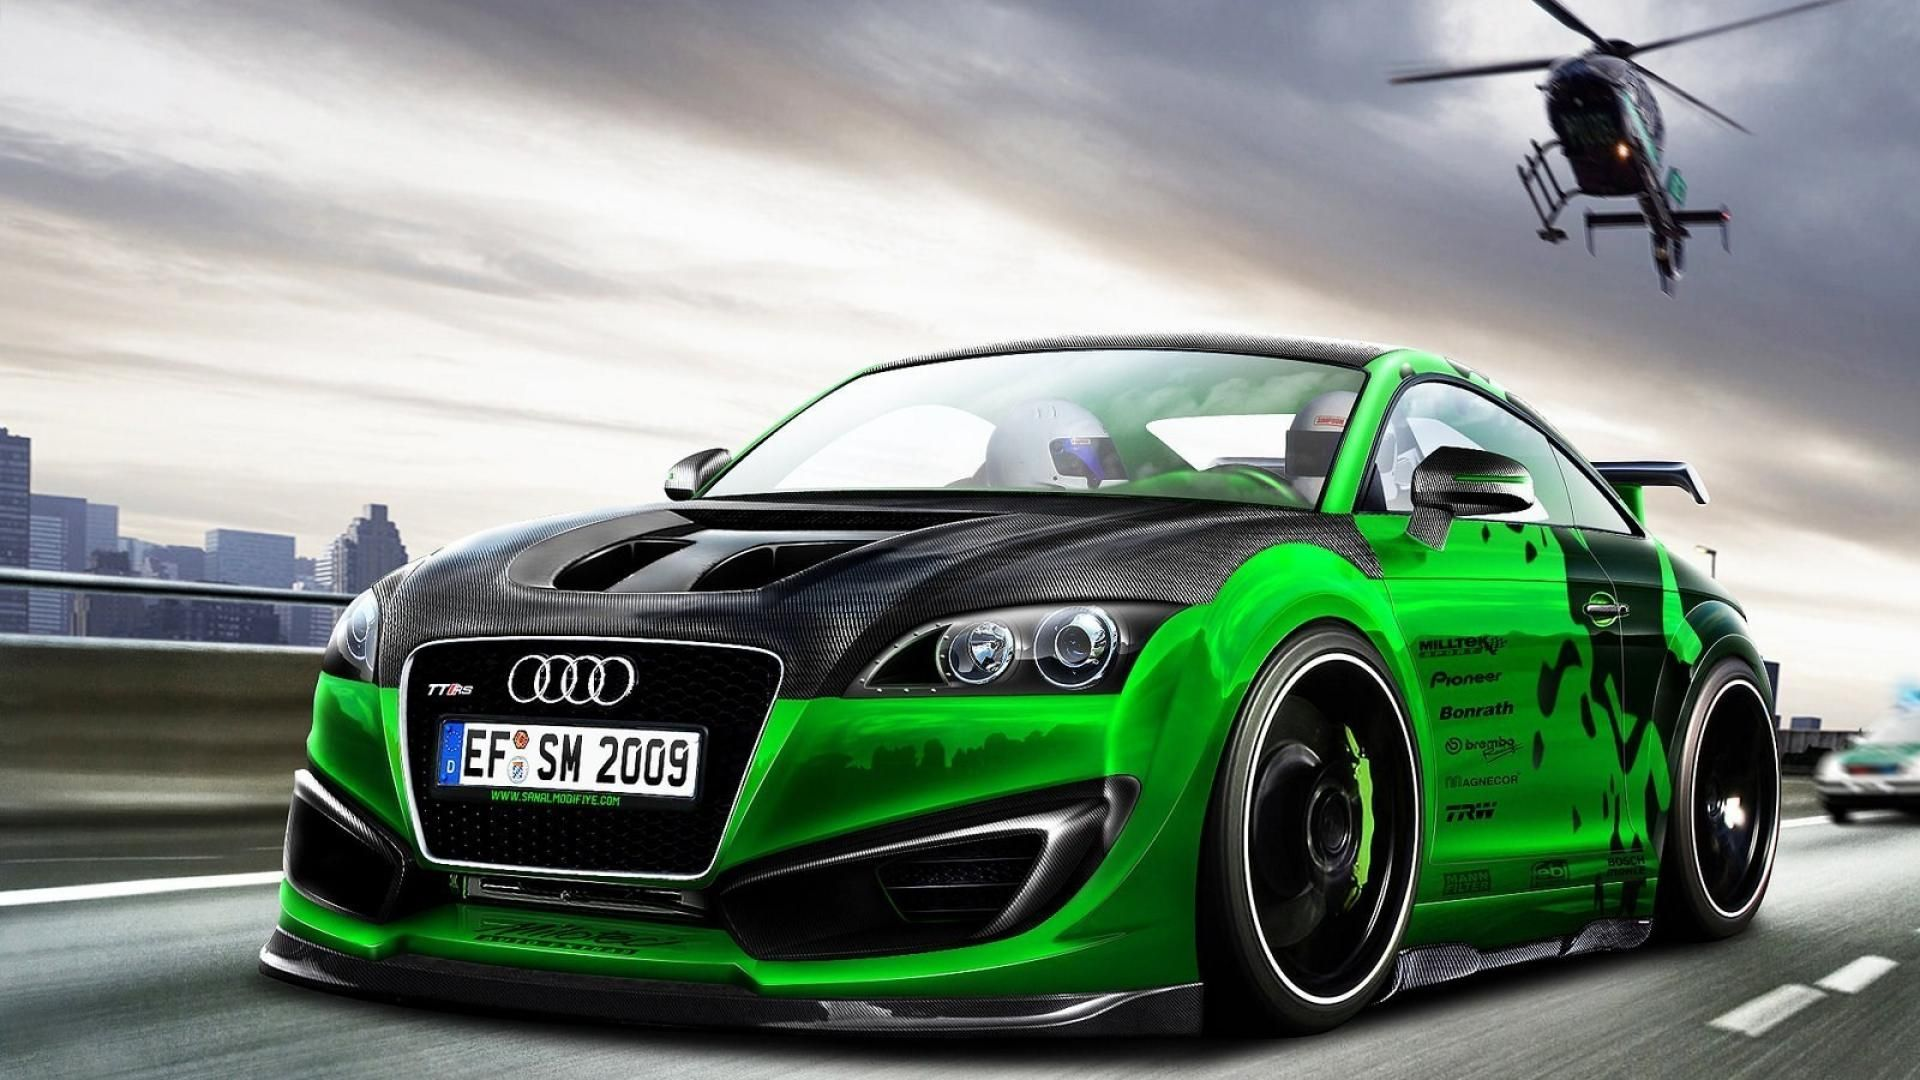 Audi Rs5 2014 | Audi RS5 Tuning Front Crystal City Car 2014 Azure Neon HD Wallpapers  ... | Cars | Pinterest | City Car, Audi Rs5 And Cars